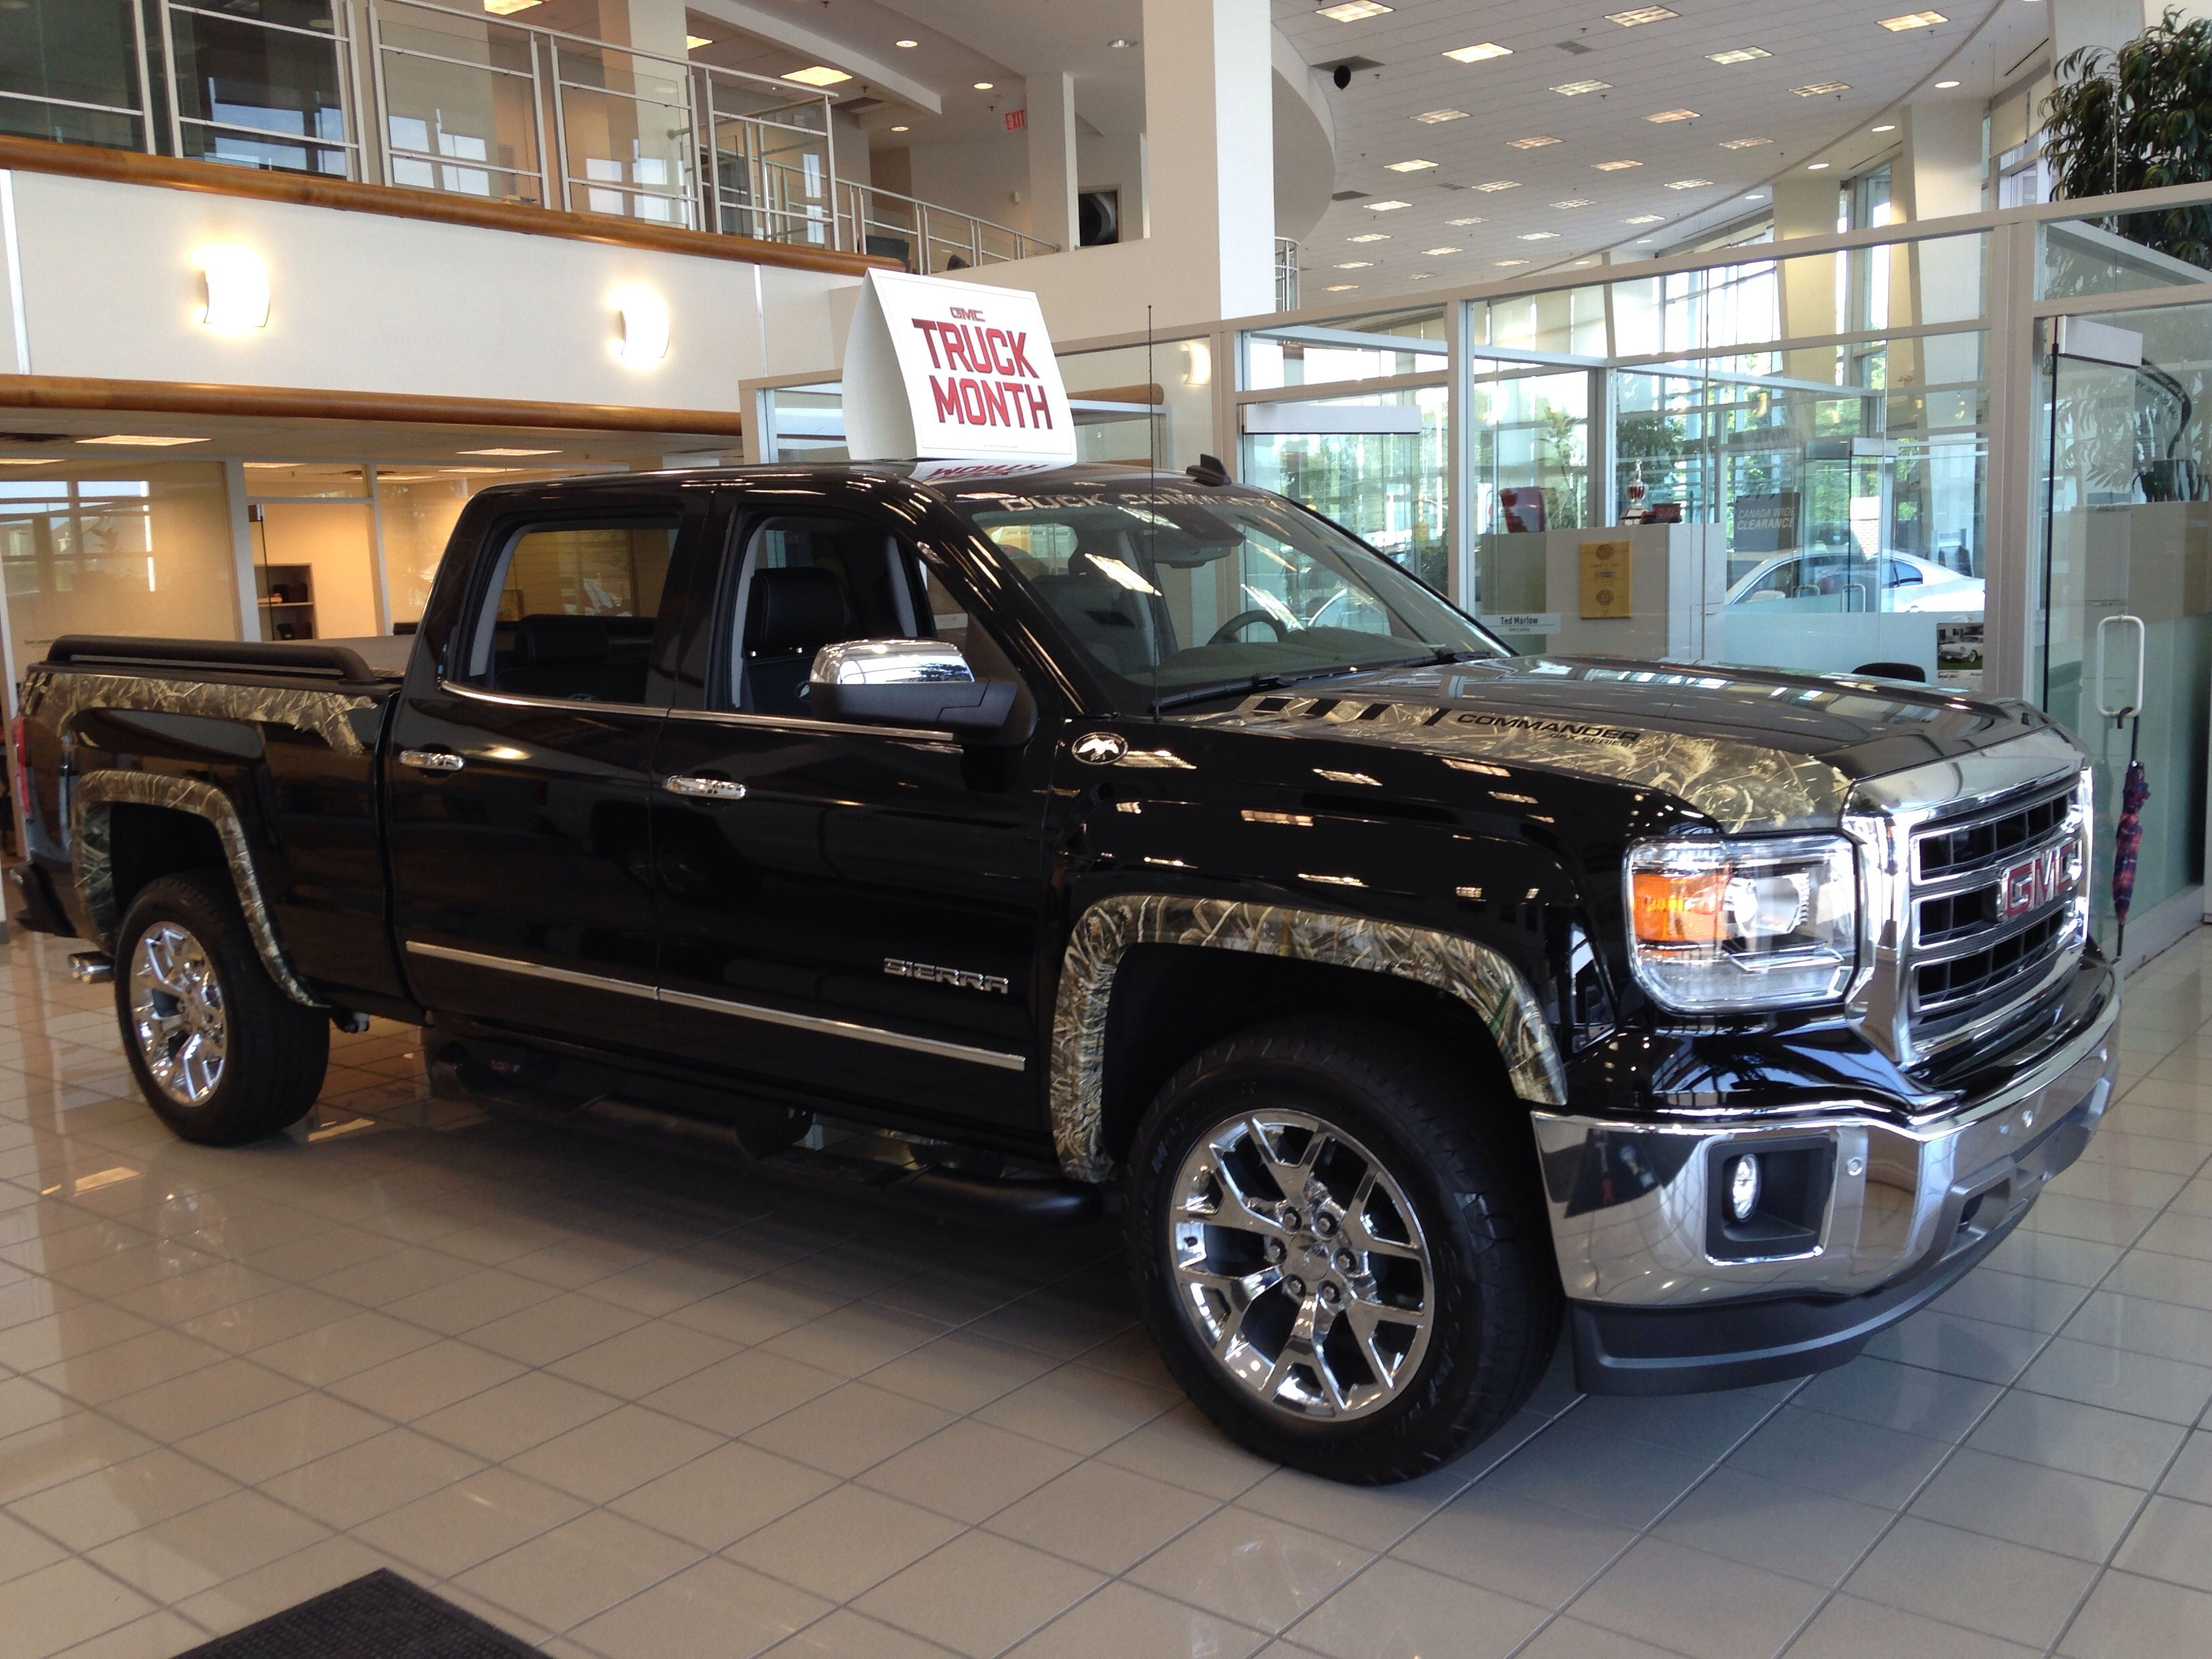 sierra lovely ft fs of lifted gmc silverado speed clean cab at gallery cardomain new parts chevy s extended